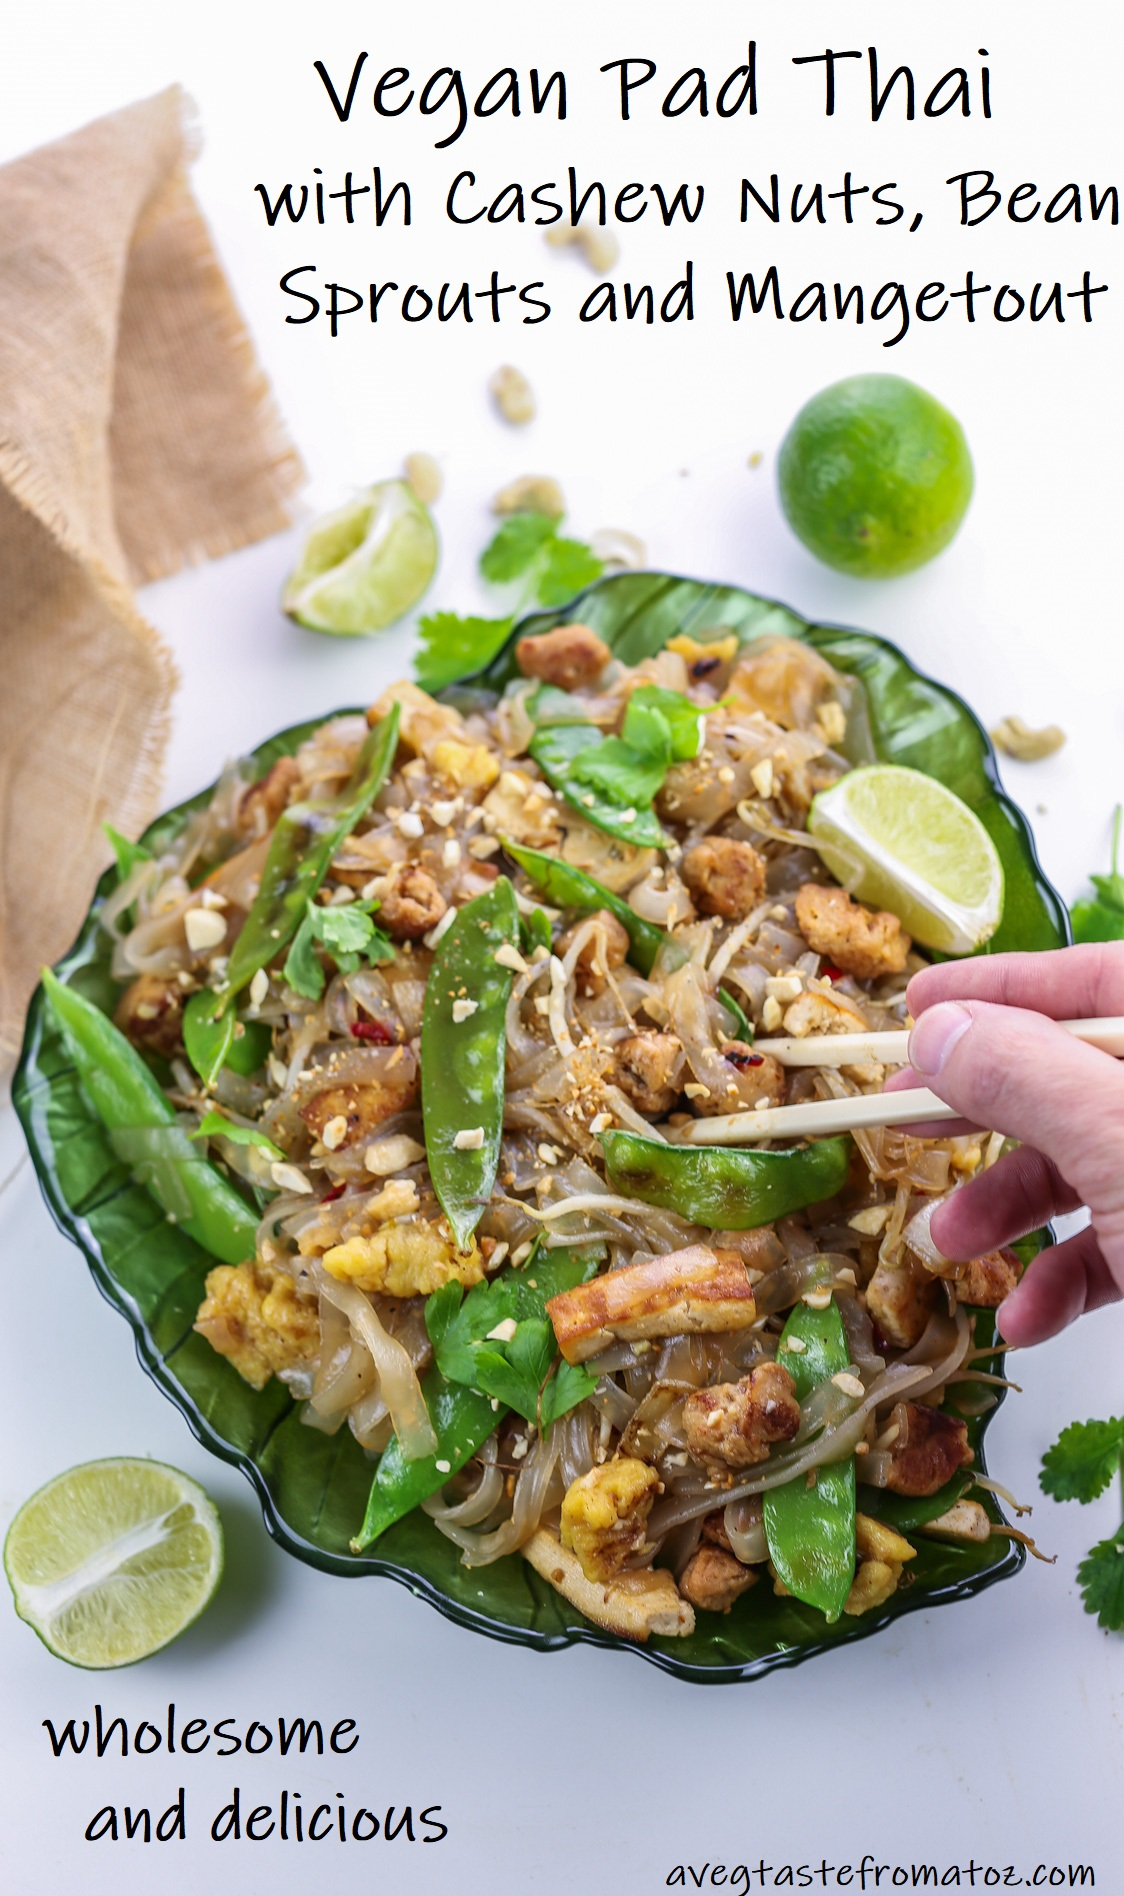 noodles and vegetables pad thai style served on a leaf shaped green plate, topped with cashews, lime wedges and cilantro leaves plate with hand holding chopsticks and black text over picture to be shared on social medias